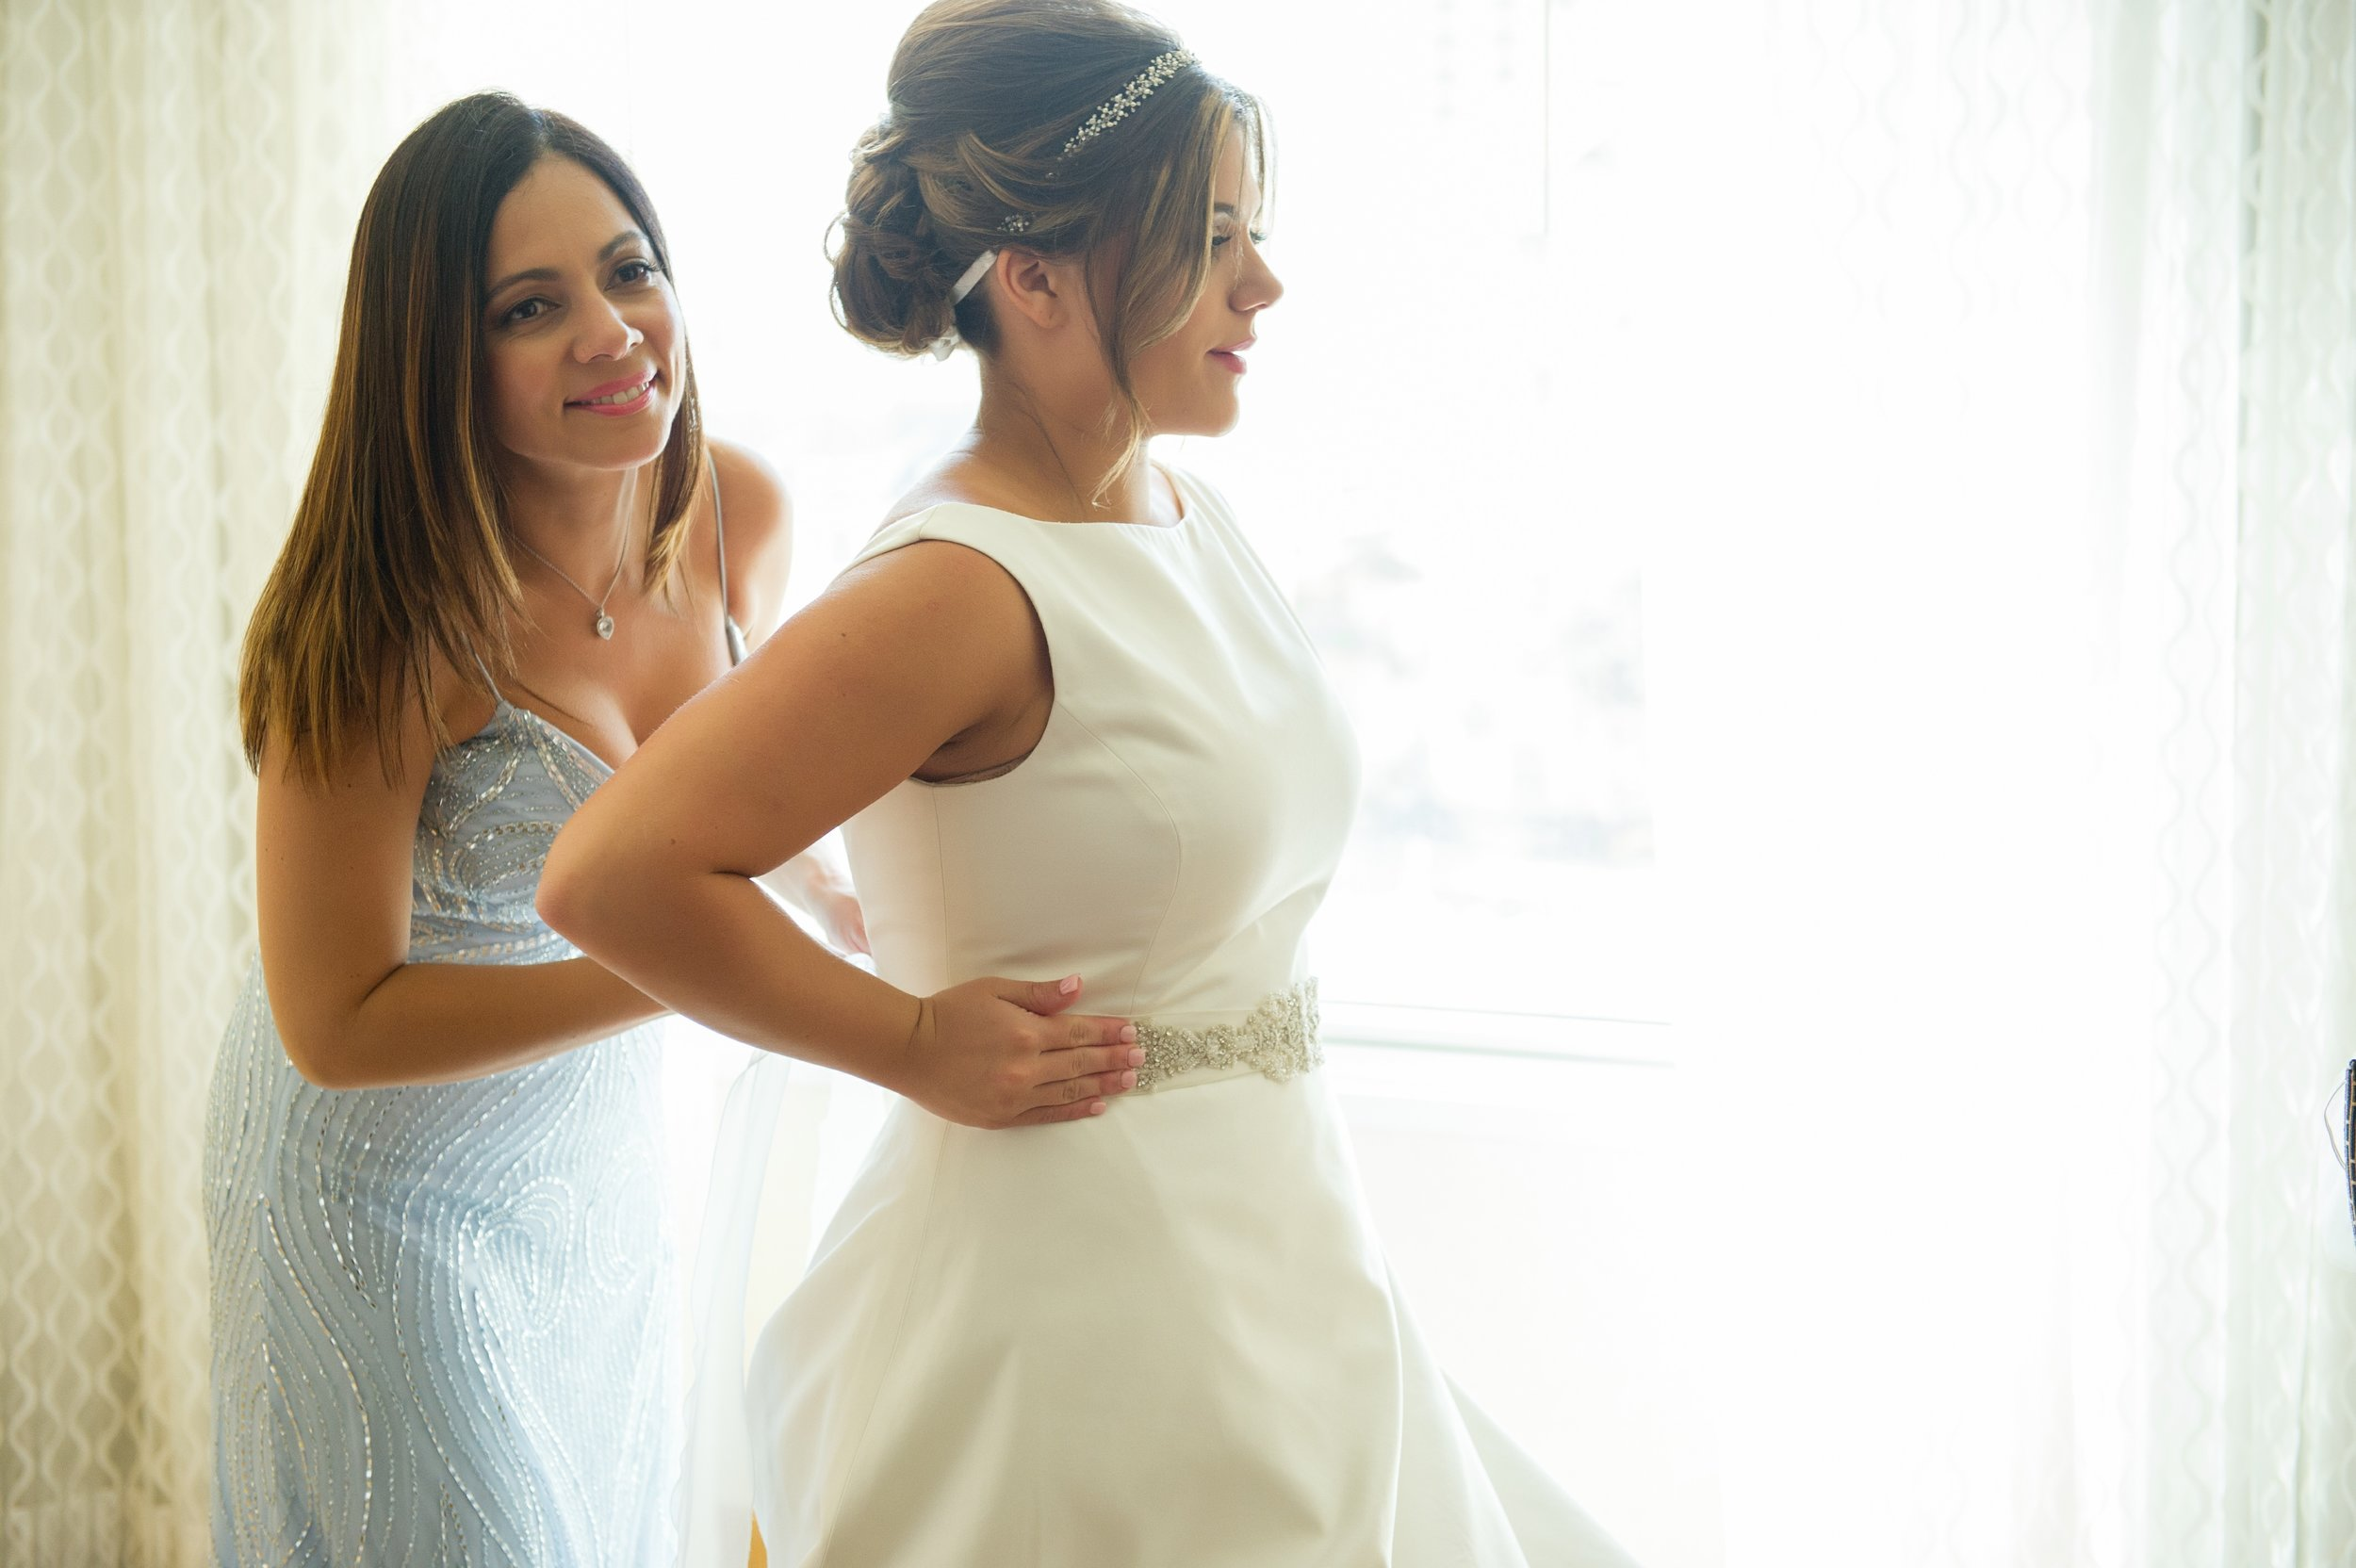 A sweet moment between mother and daughter, as the bride was helped into her dress.